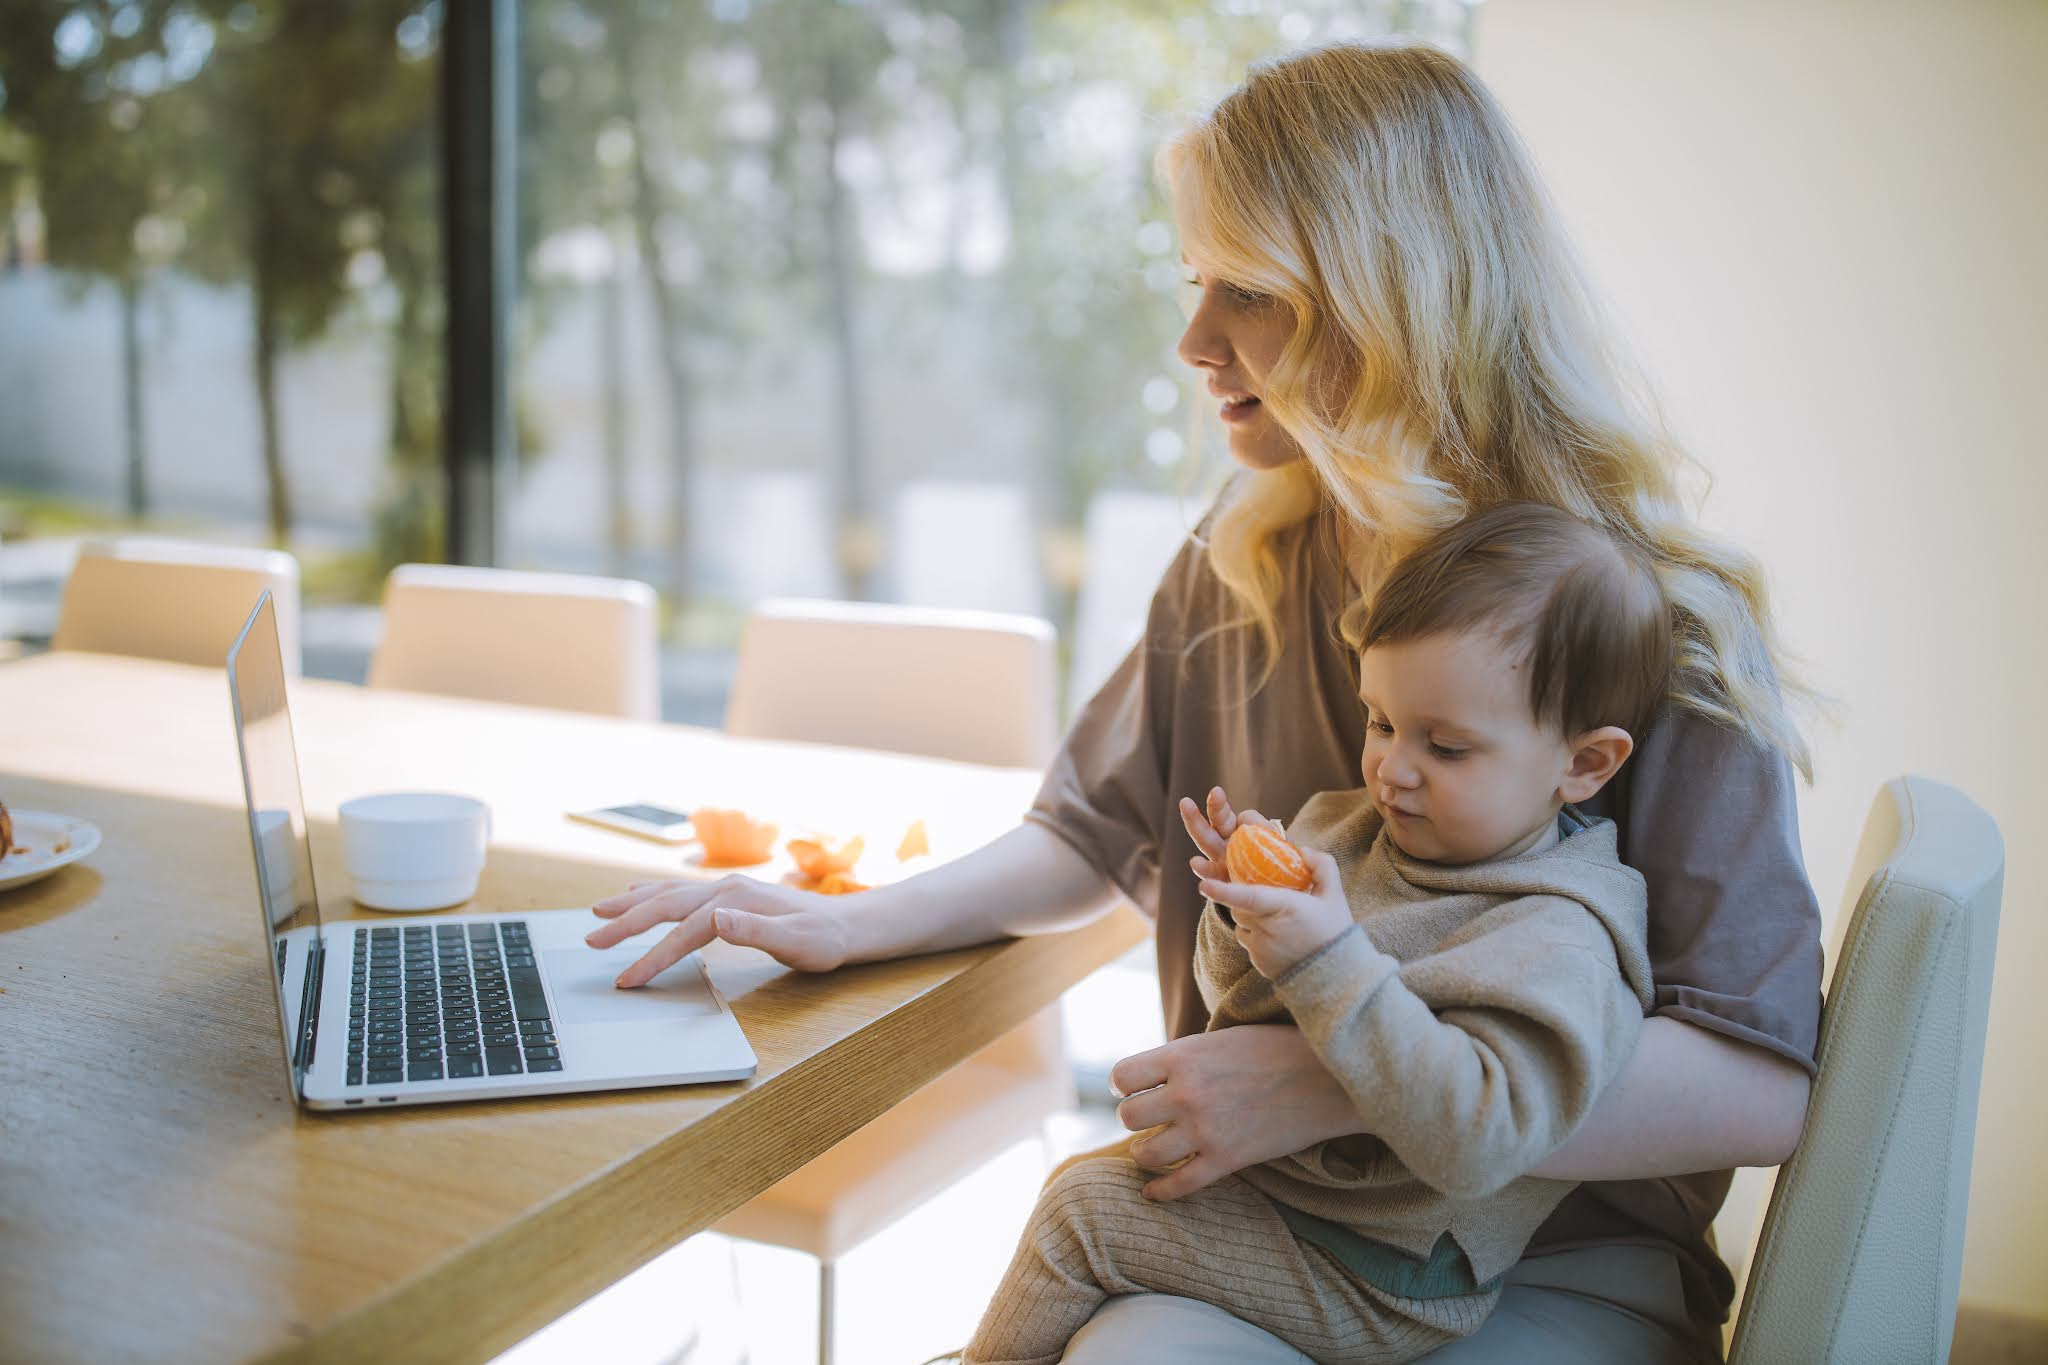 How to Make Time for Studying When You Have Kids